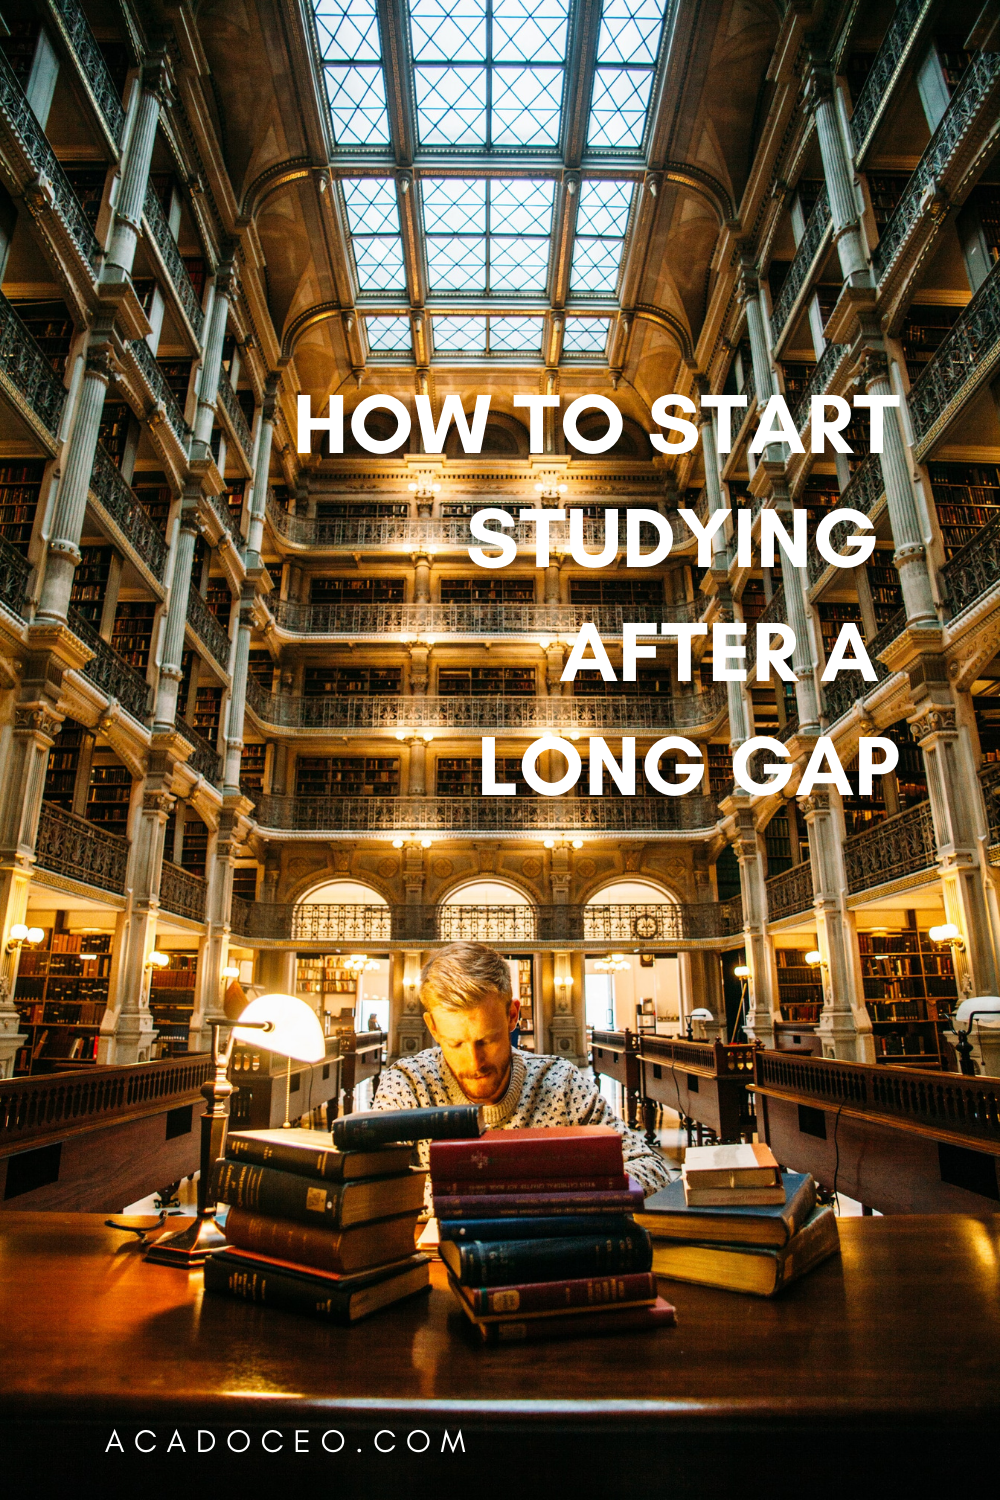 How to Start Studying After a Long Gap